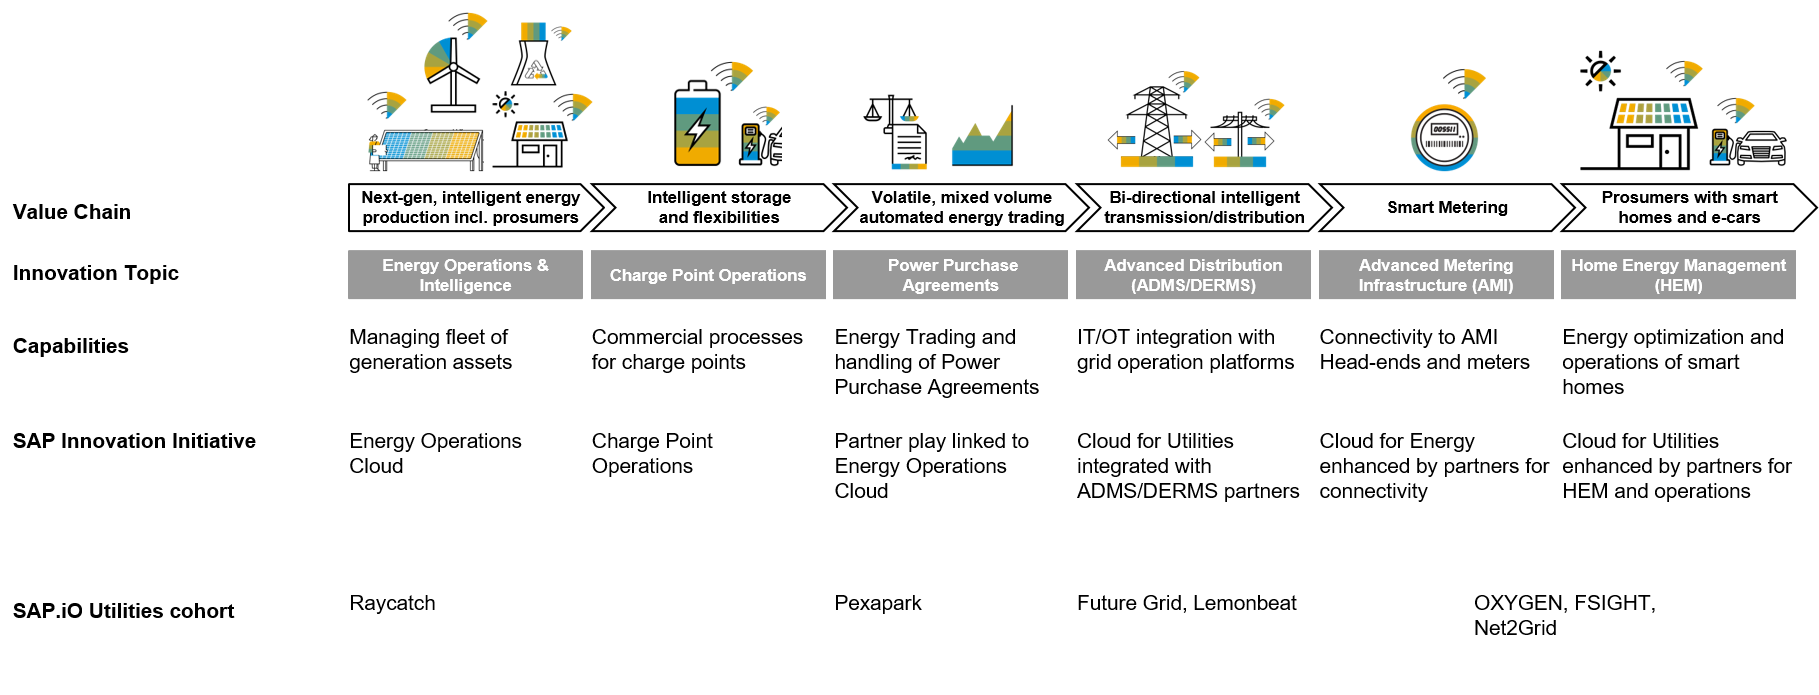 Energy Transition Meets Digital Transformation – SAP Innovation Strategy for Utilities